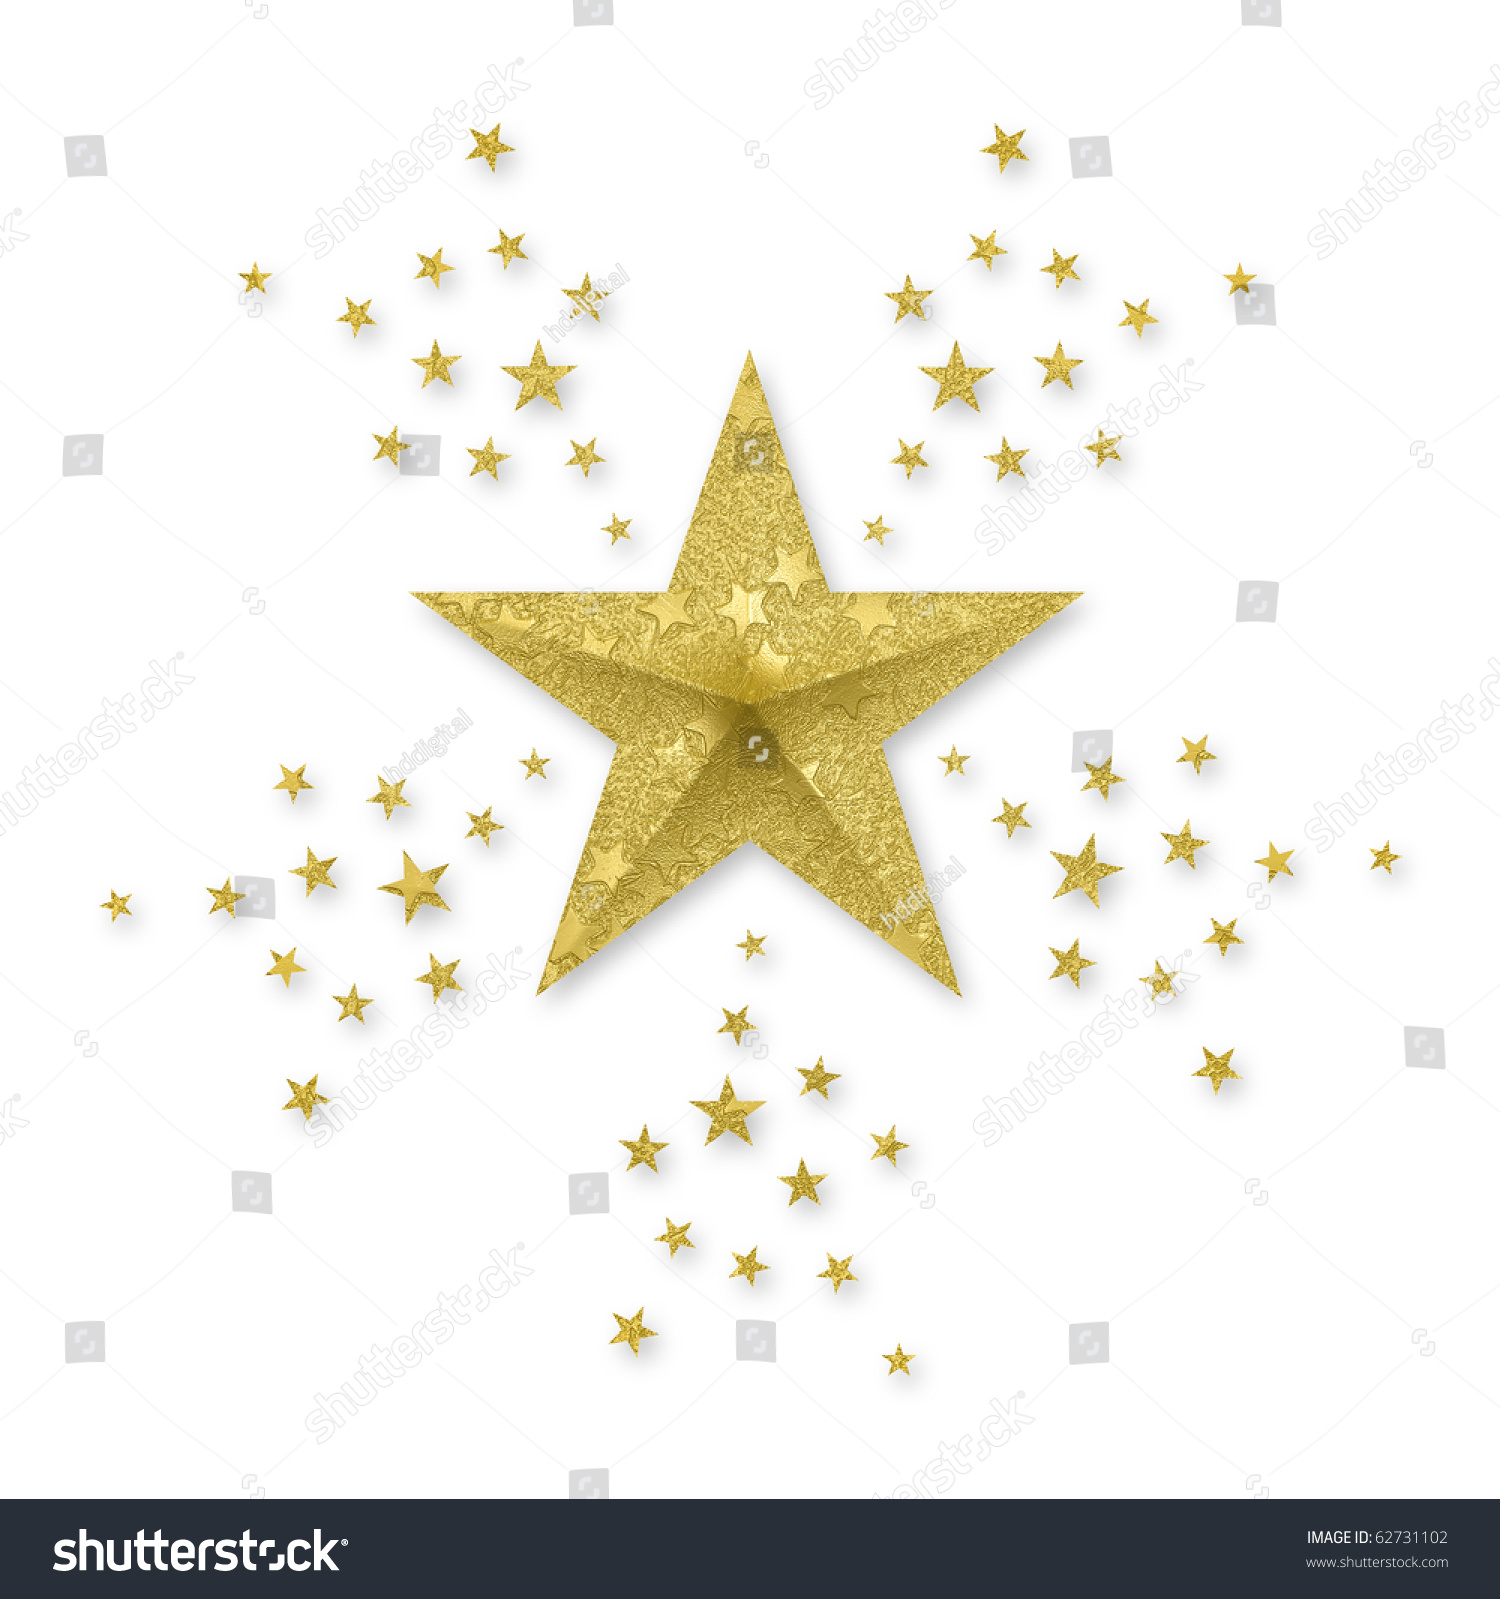 Gold star small stars radiating out stock illustration